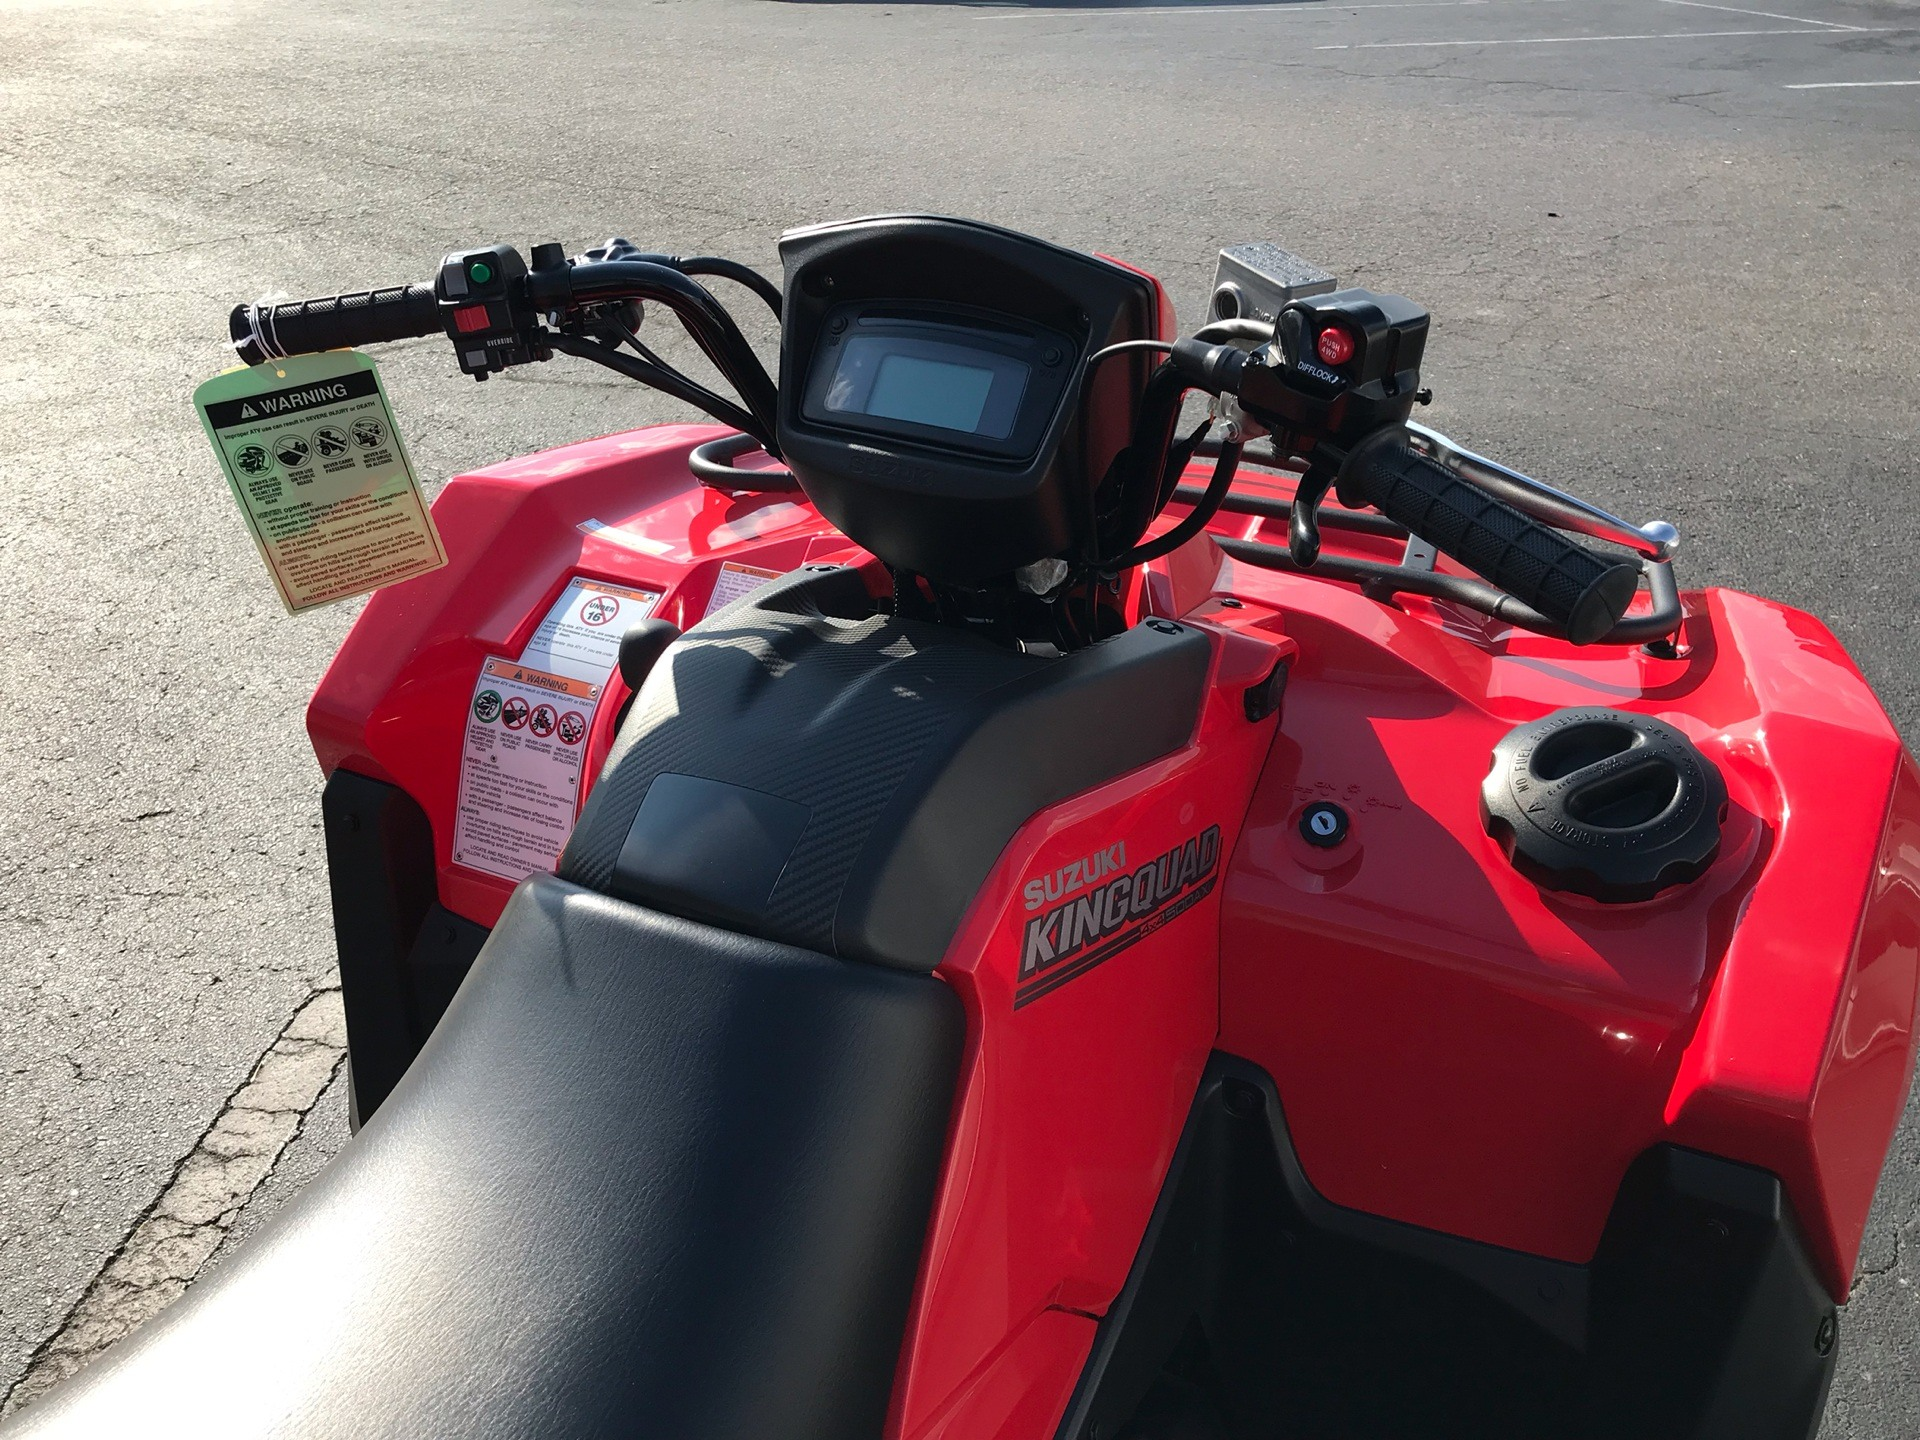 2020 Suzuki KingQuad 500AXi in Sanford, North Carolina - Photo 11